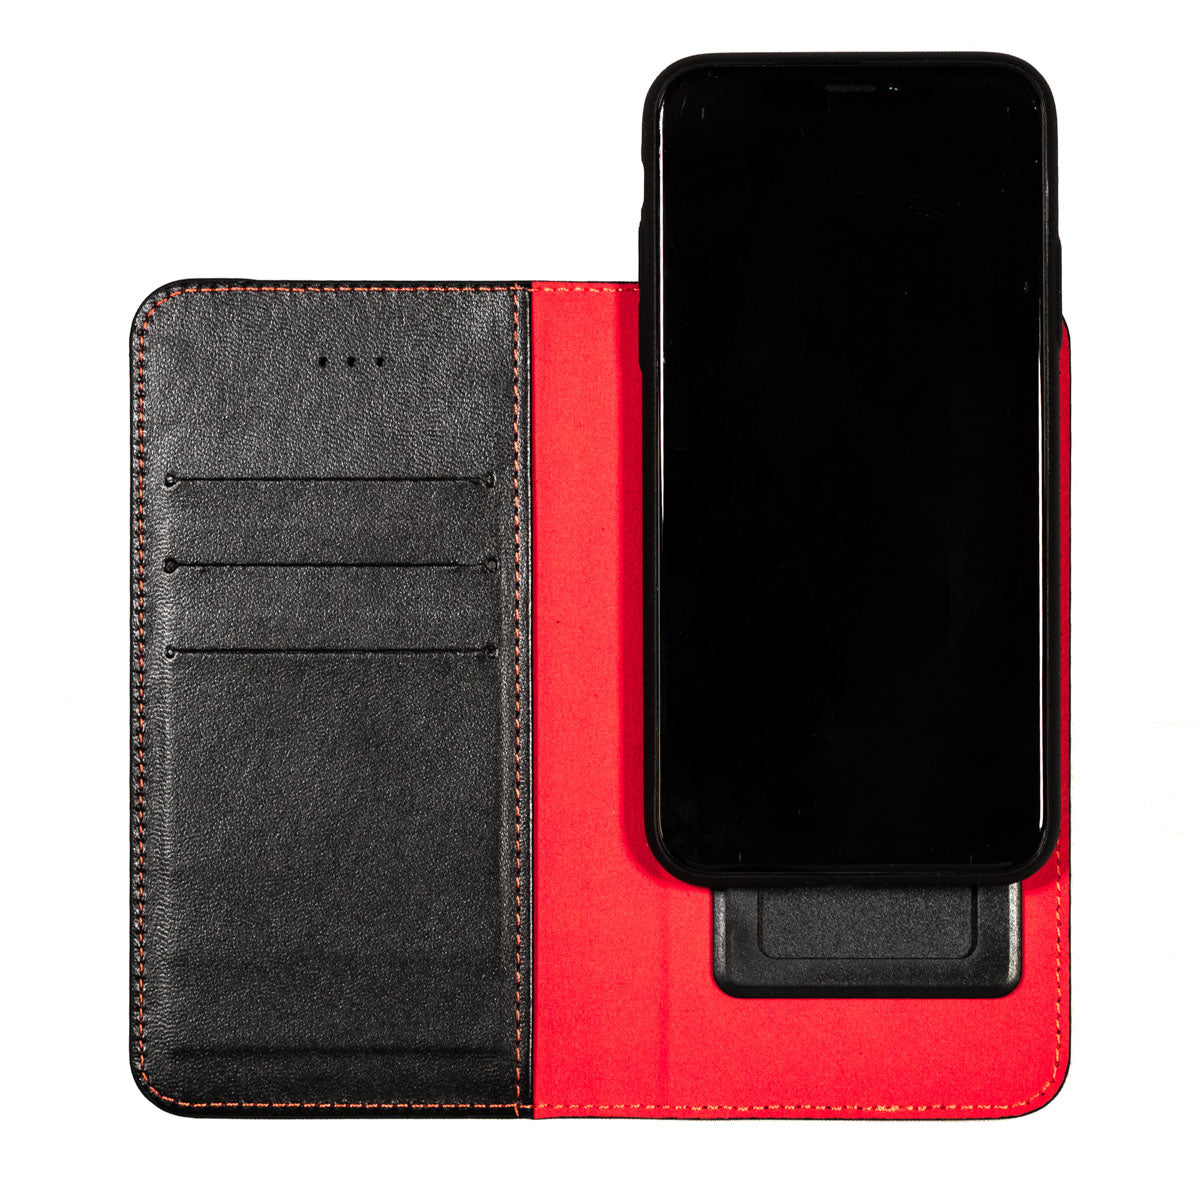 Red Mobile Phone Radiation & Credit Card Information Theft Protection Case (87% less radiation)